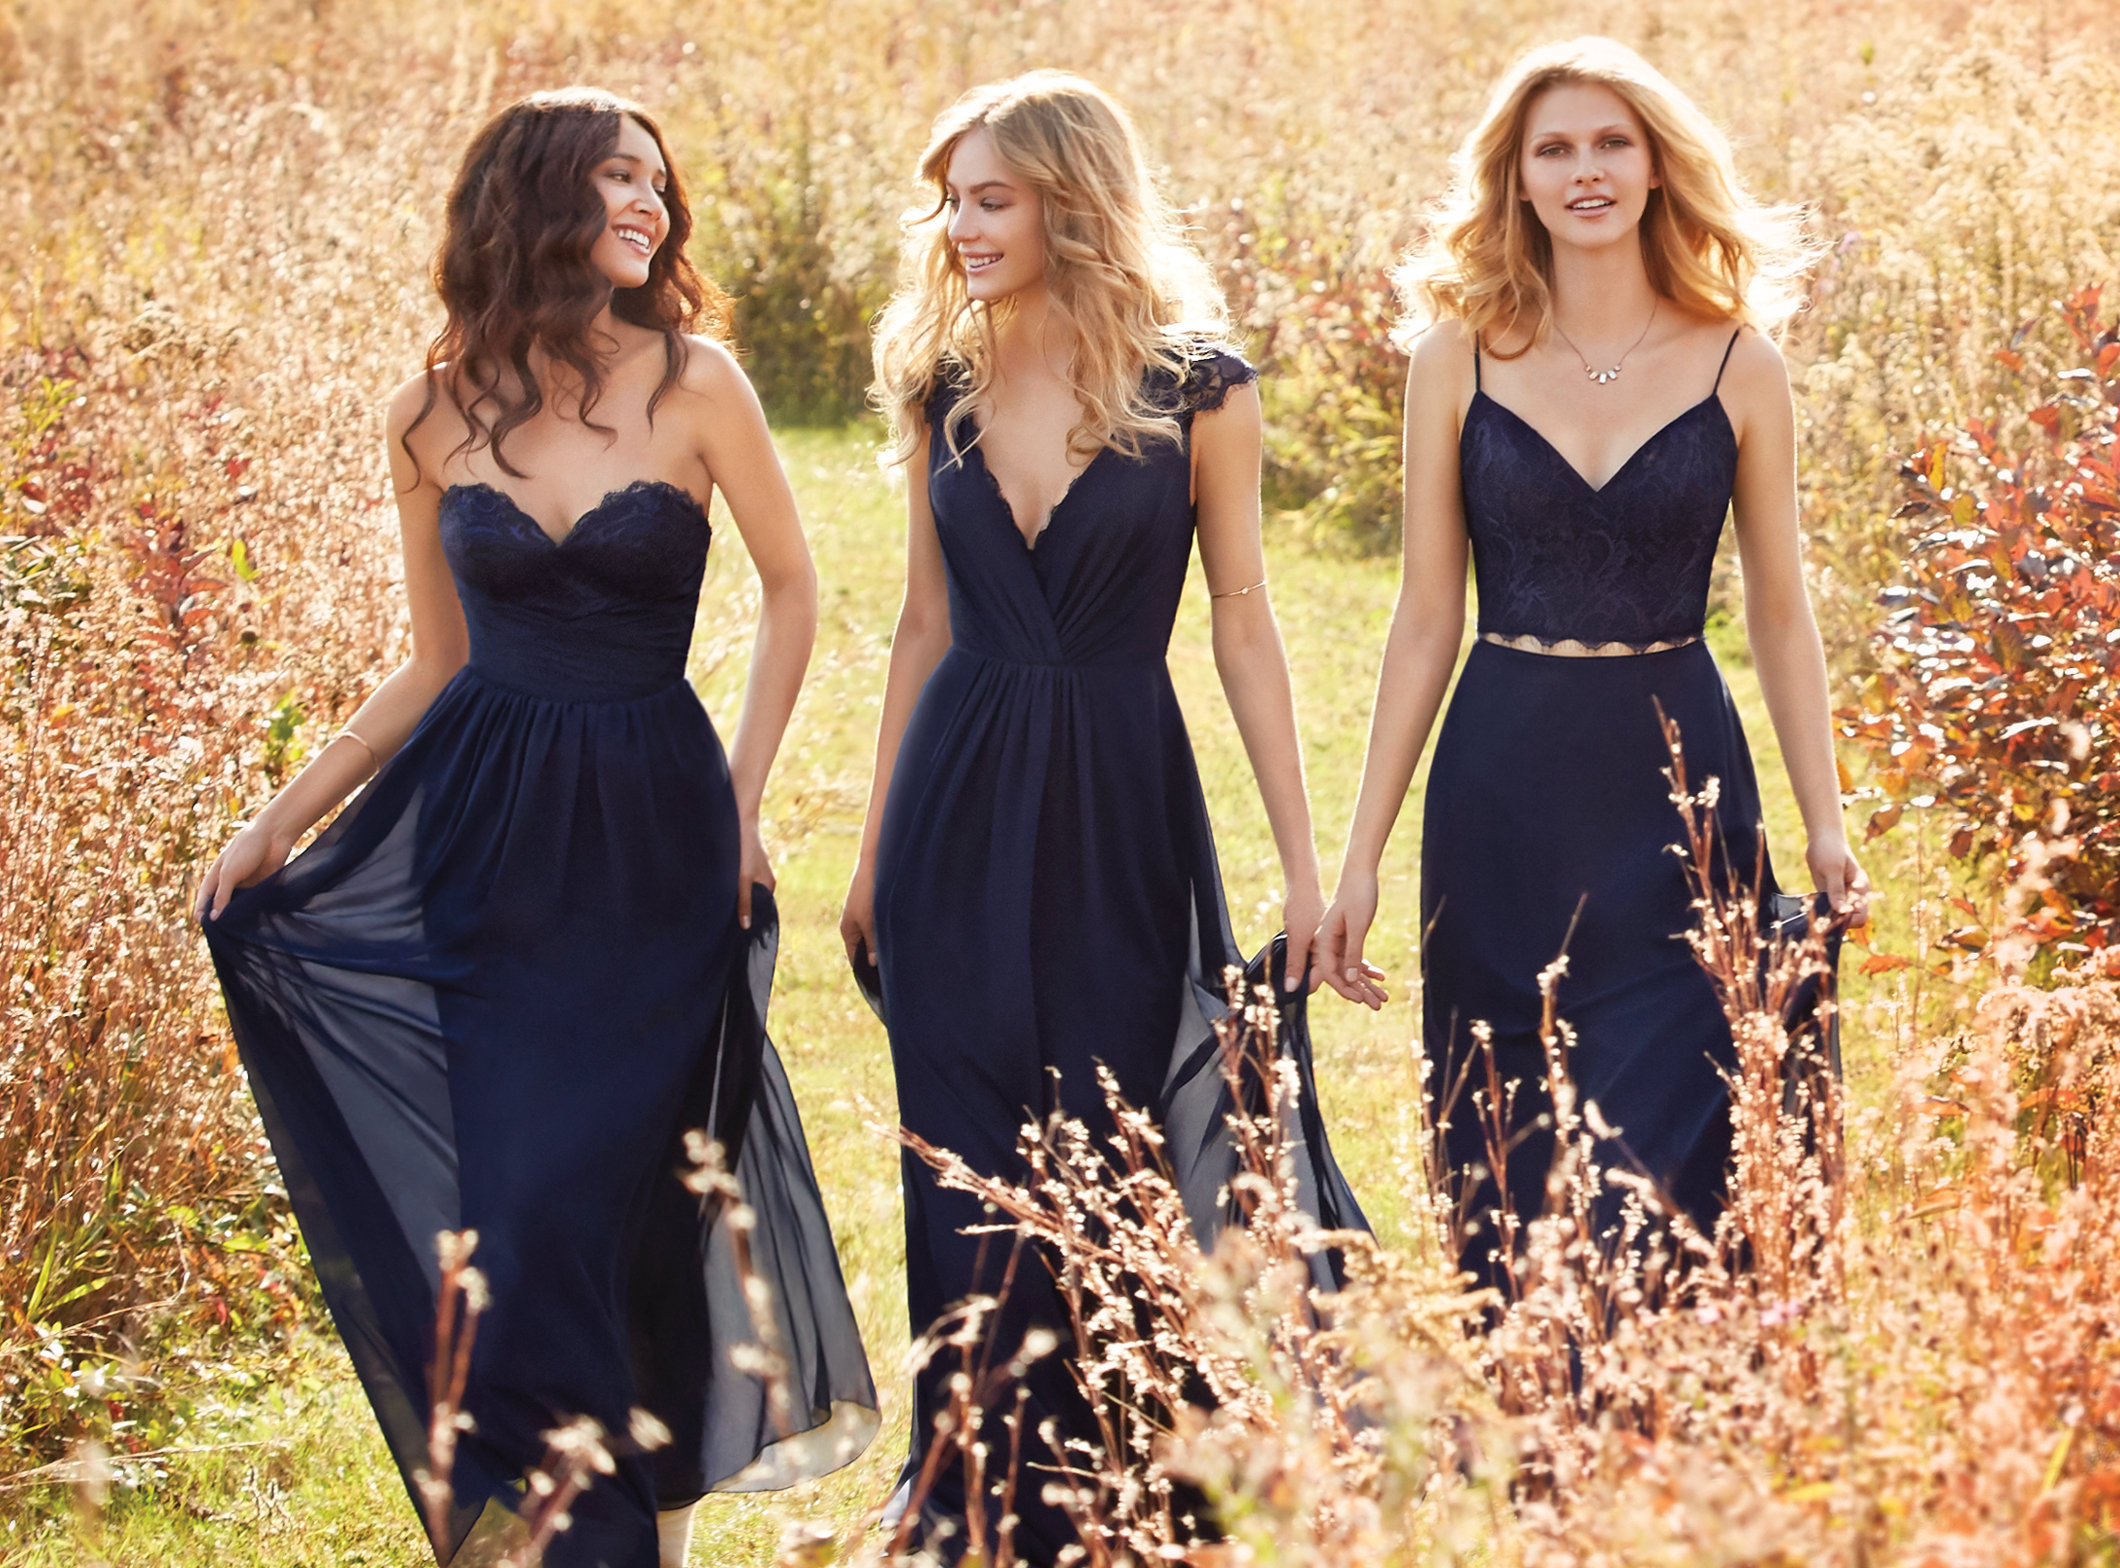 Bridesmaids special occasion dresses and bridal party gowns by style 5602 jlm pinterest icon ombrellifo Gallery